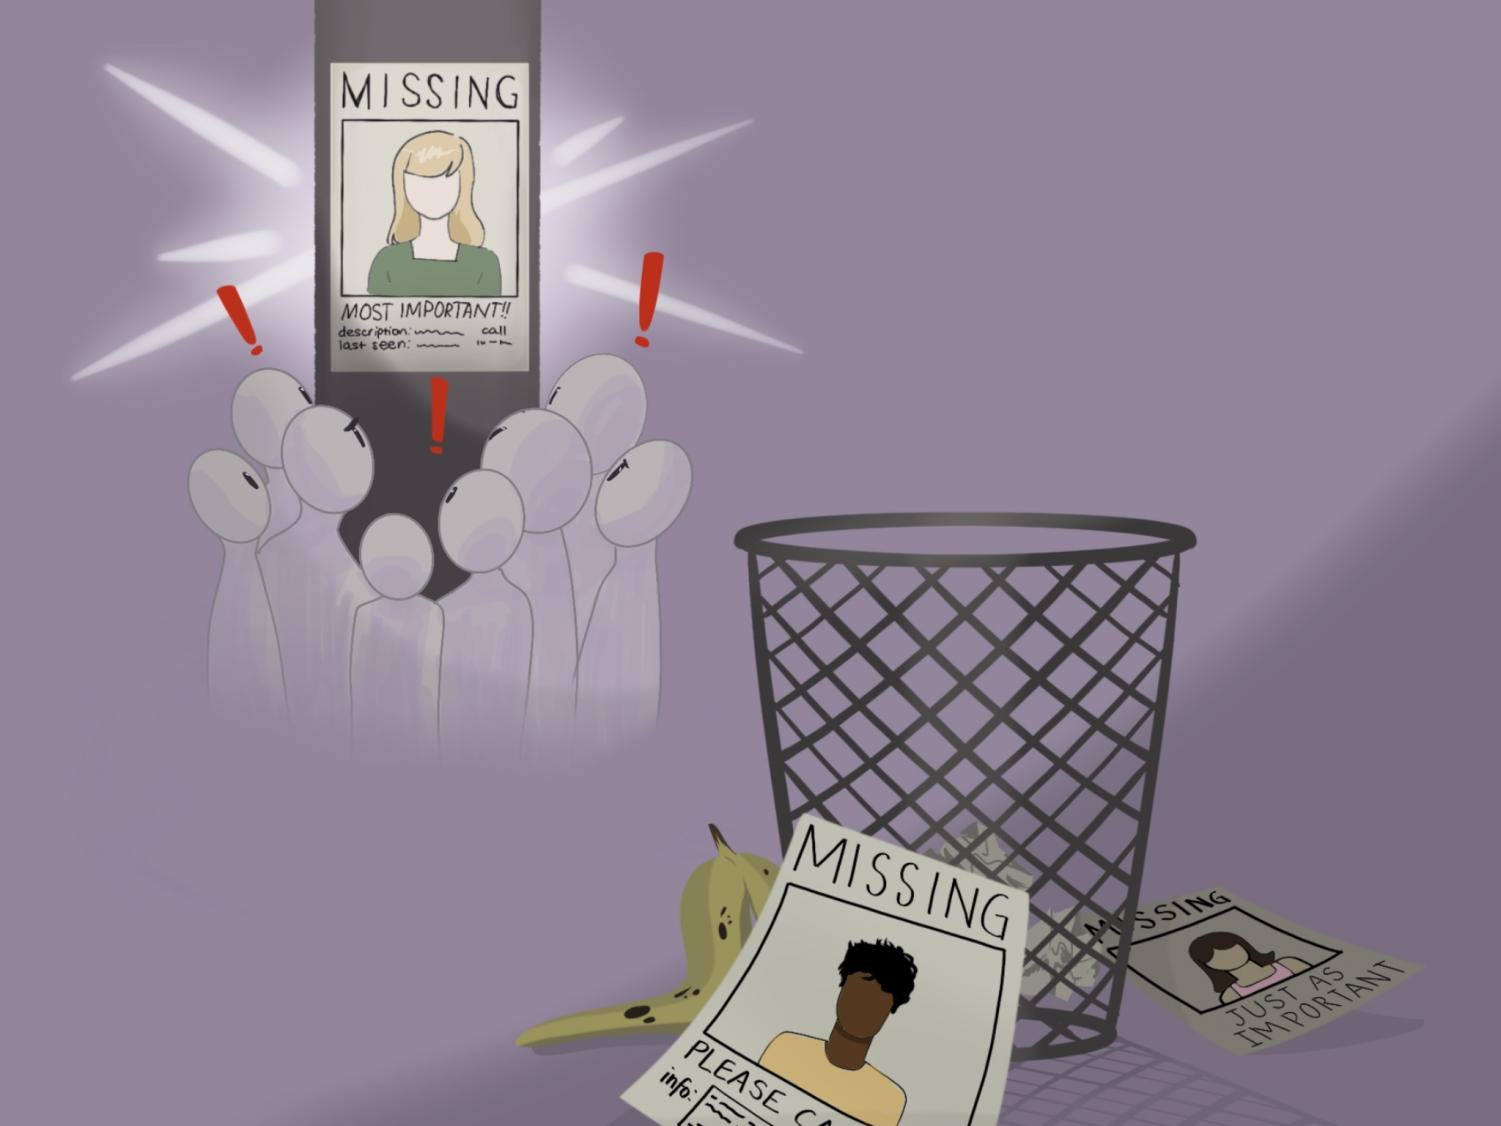 Missing White Women: Why Racial Bias Dominates Coverage of Missing Person Cases